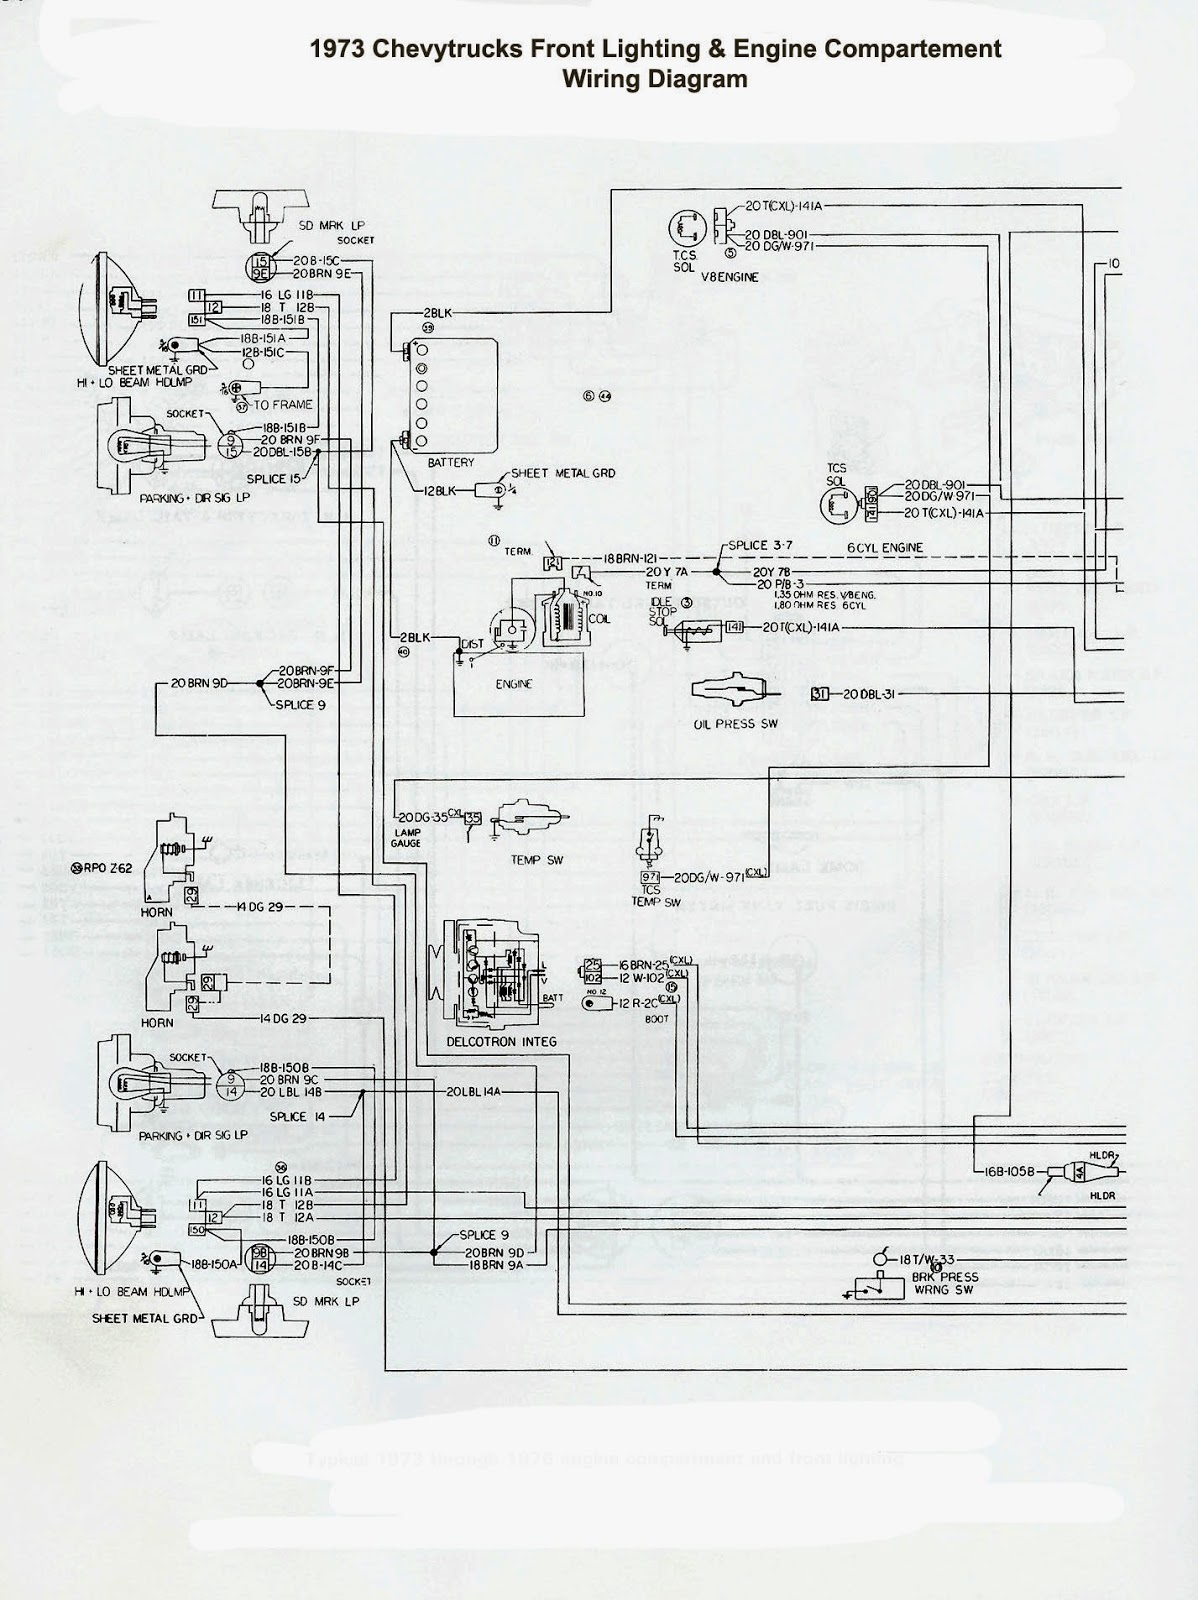 1978 Chevy Trucks Front Lighting & Engine Compartement Wiring Diagram